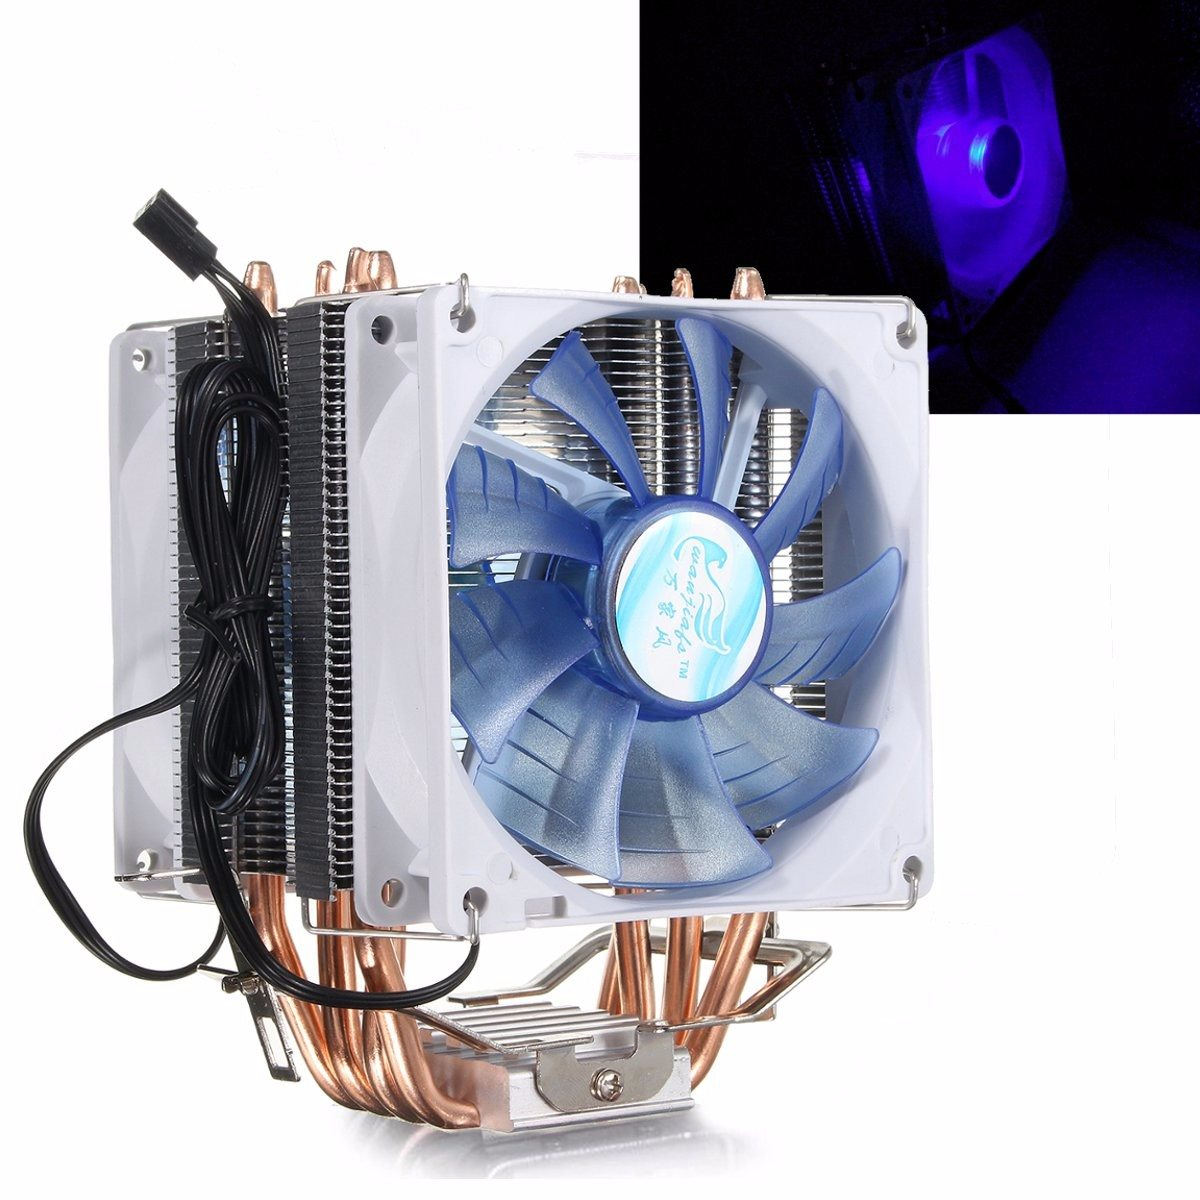 12V Dual CPU Cooler Fan Quiet Blue LED Light 92x92x25mm 3pin Powerful Fan for Intel LGA775